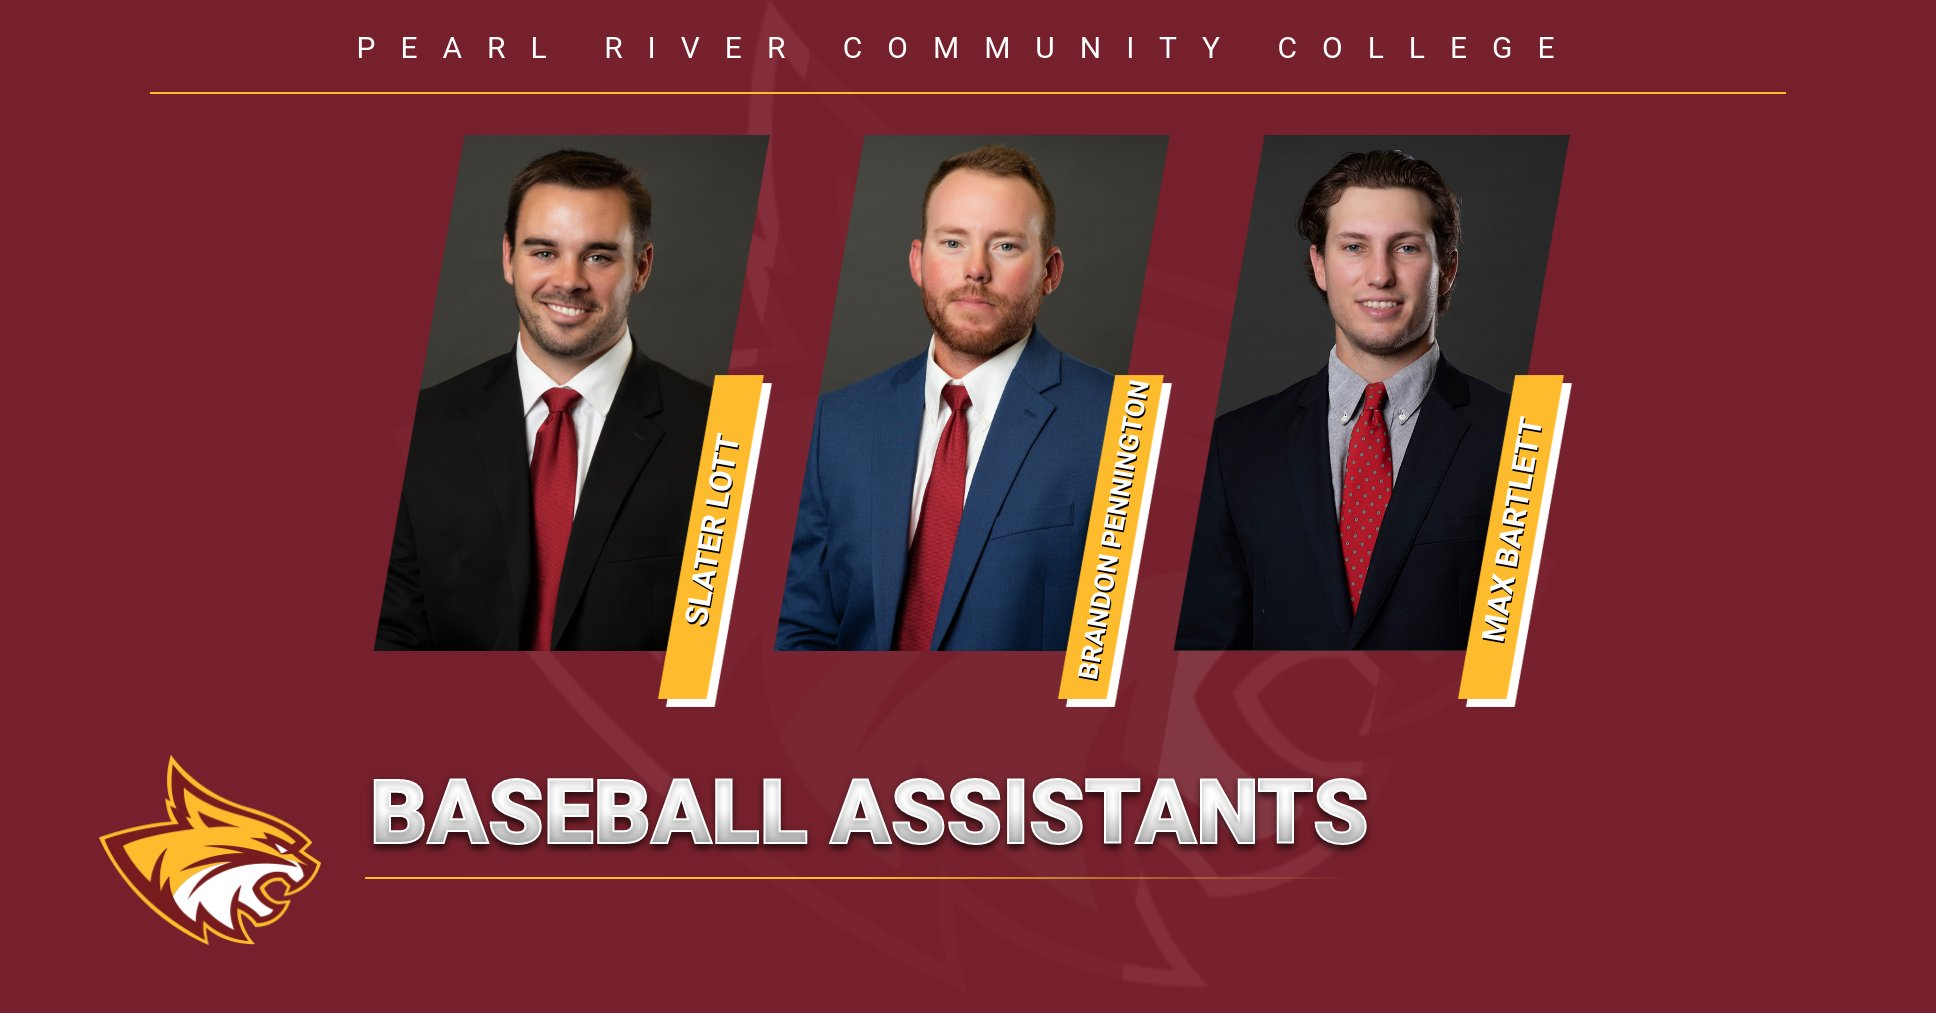 Pearl River baseball has 'all the right pieces' with new hires